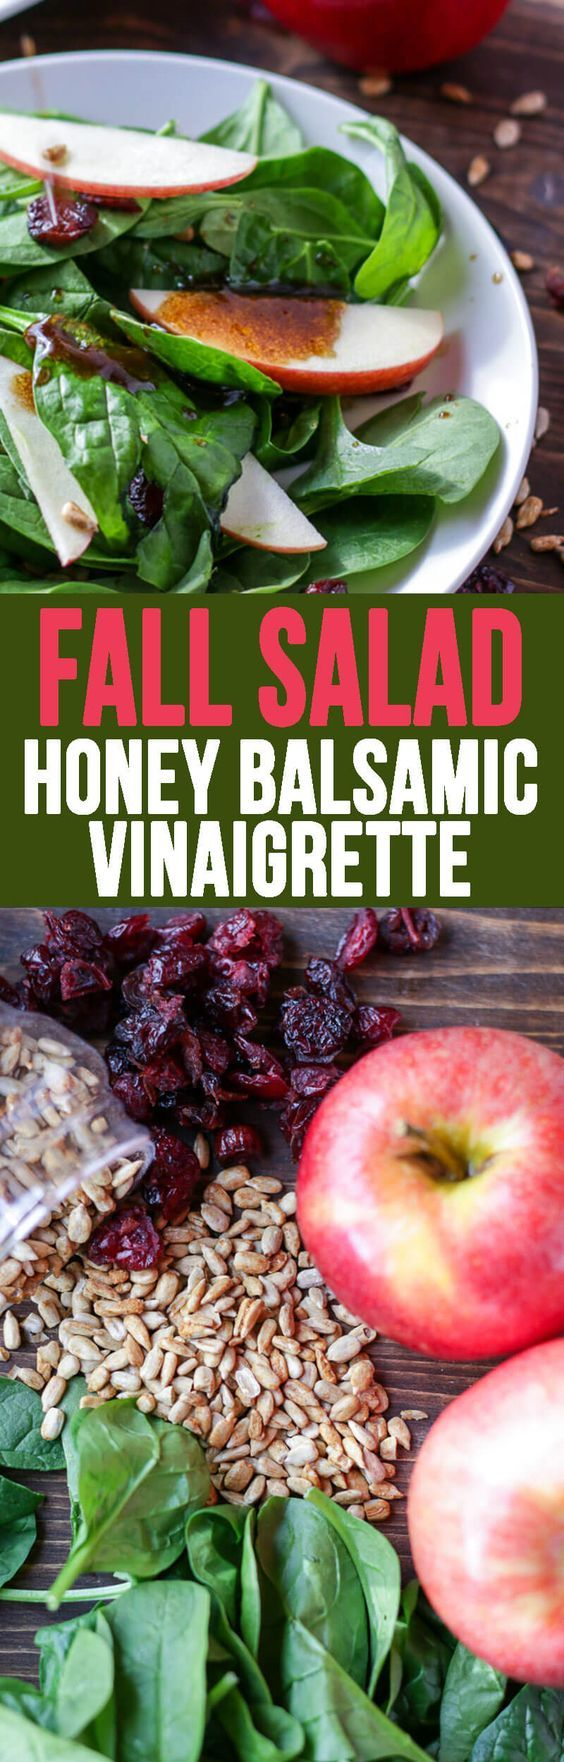 Apple Spinach Salad with Balsamic Vinegar Dressing is a Fall favorite! #salad #applespinachsalad #balsamicvinegardressing #saladdressing #fallsalad #thanksgivingside